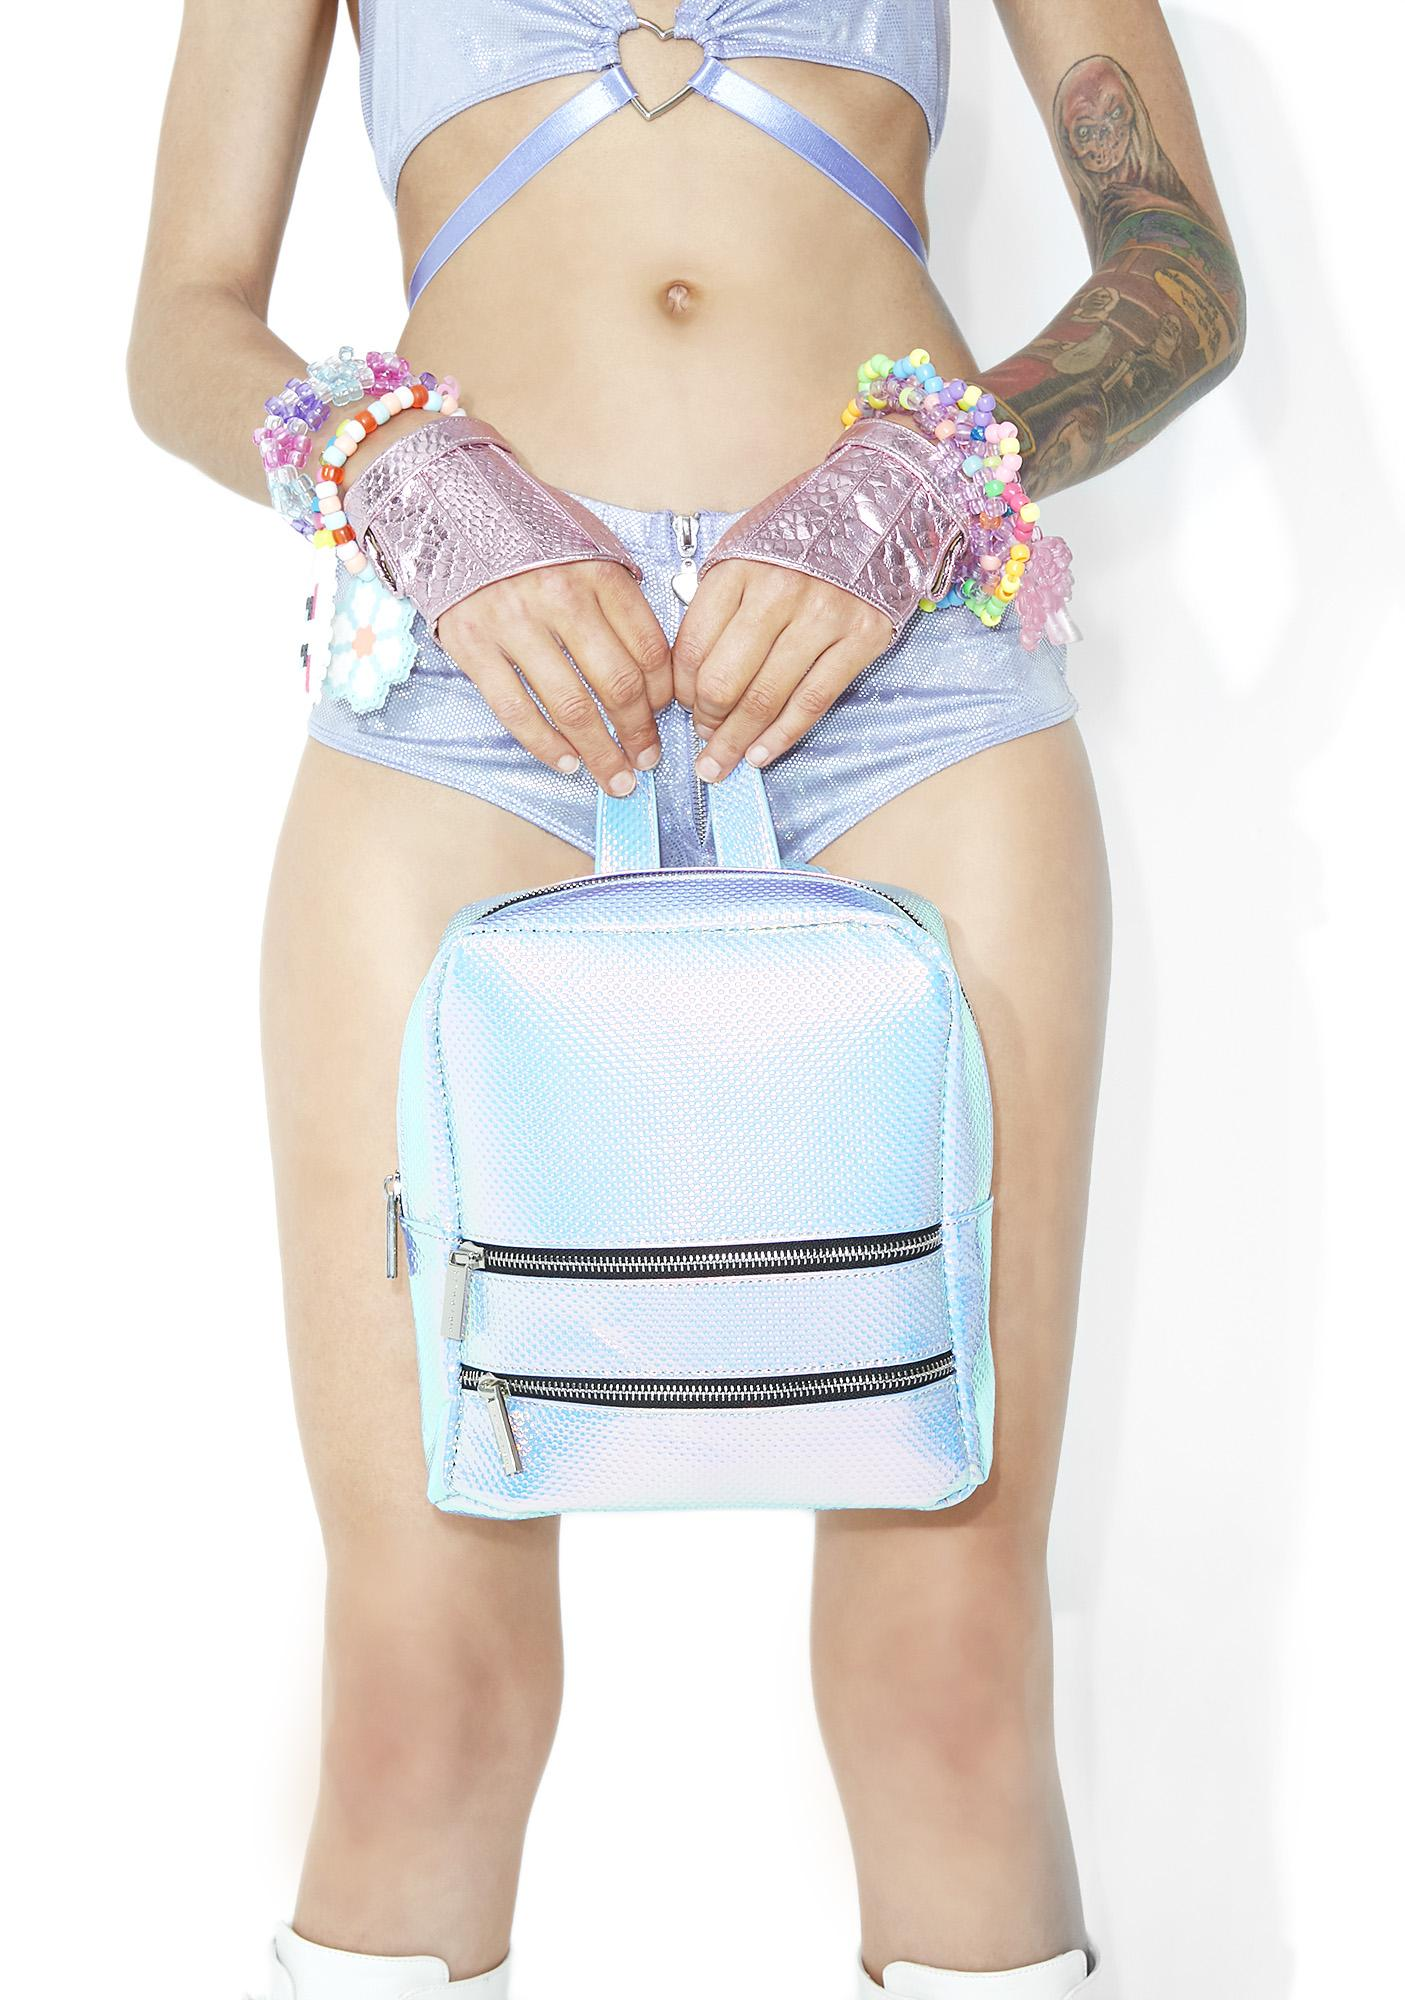 Skinnydip Iridescent Molly Backpack